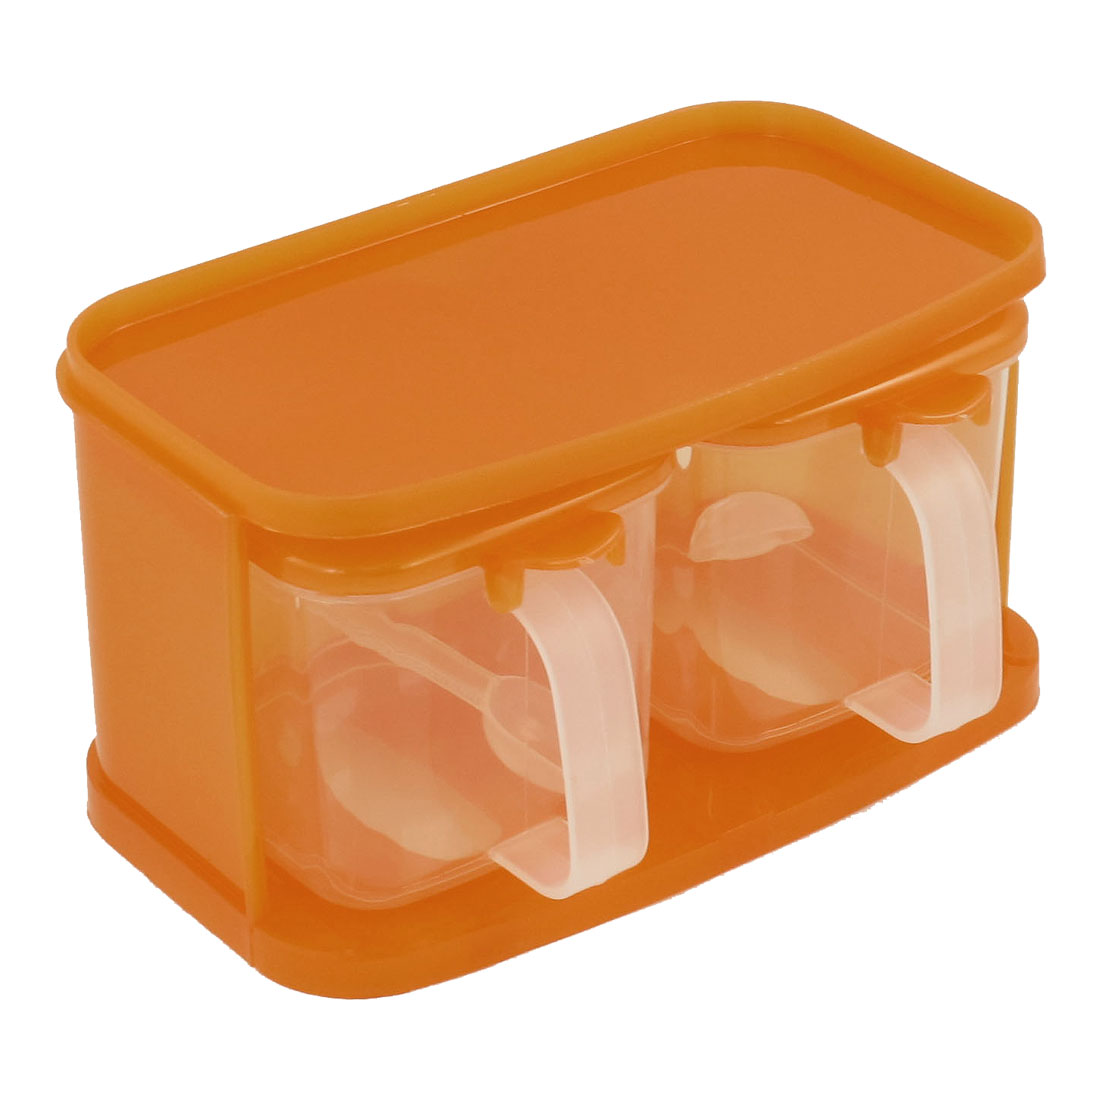 Kitchen Orange Clear Plastic Holder 2 in 1 Spices Dispenser Case Box Container